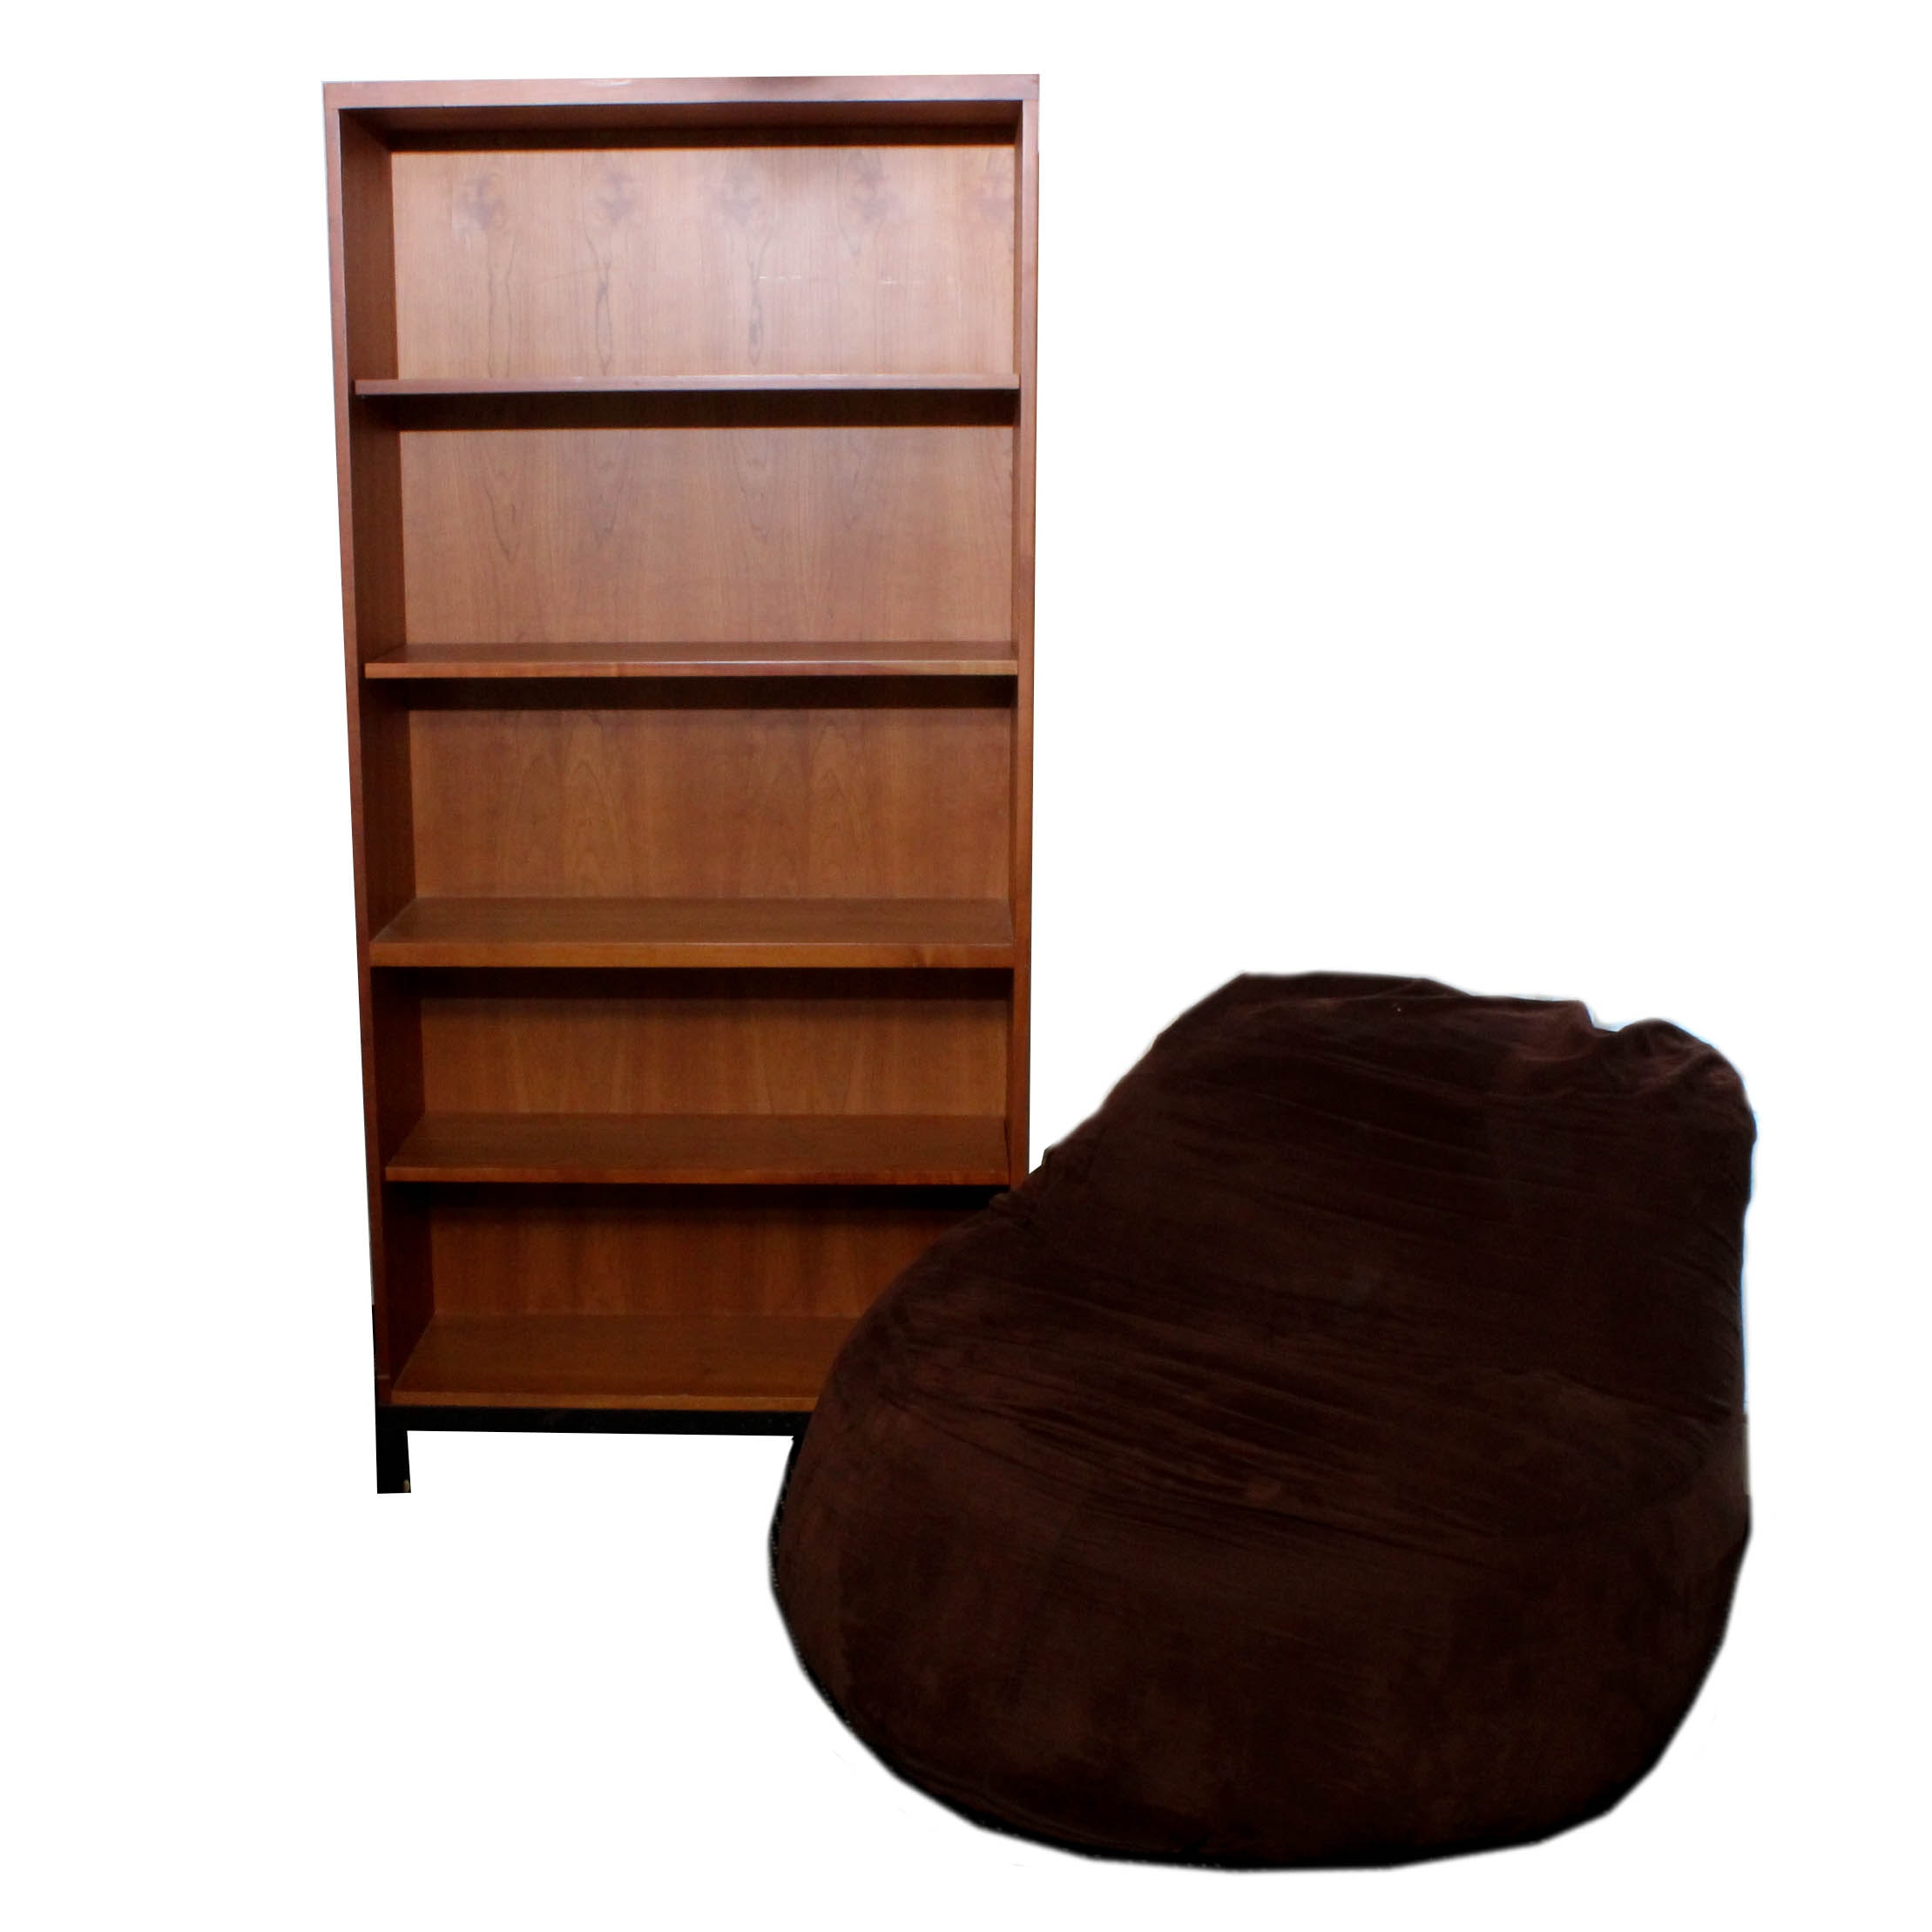 Sleep Inovations Chair with Contemporary Hardwood Veneer Bookcase